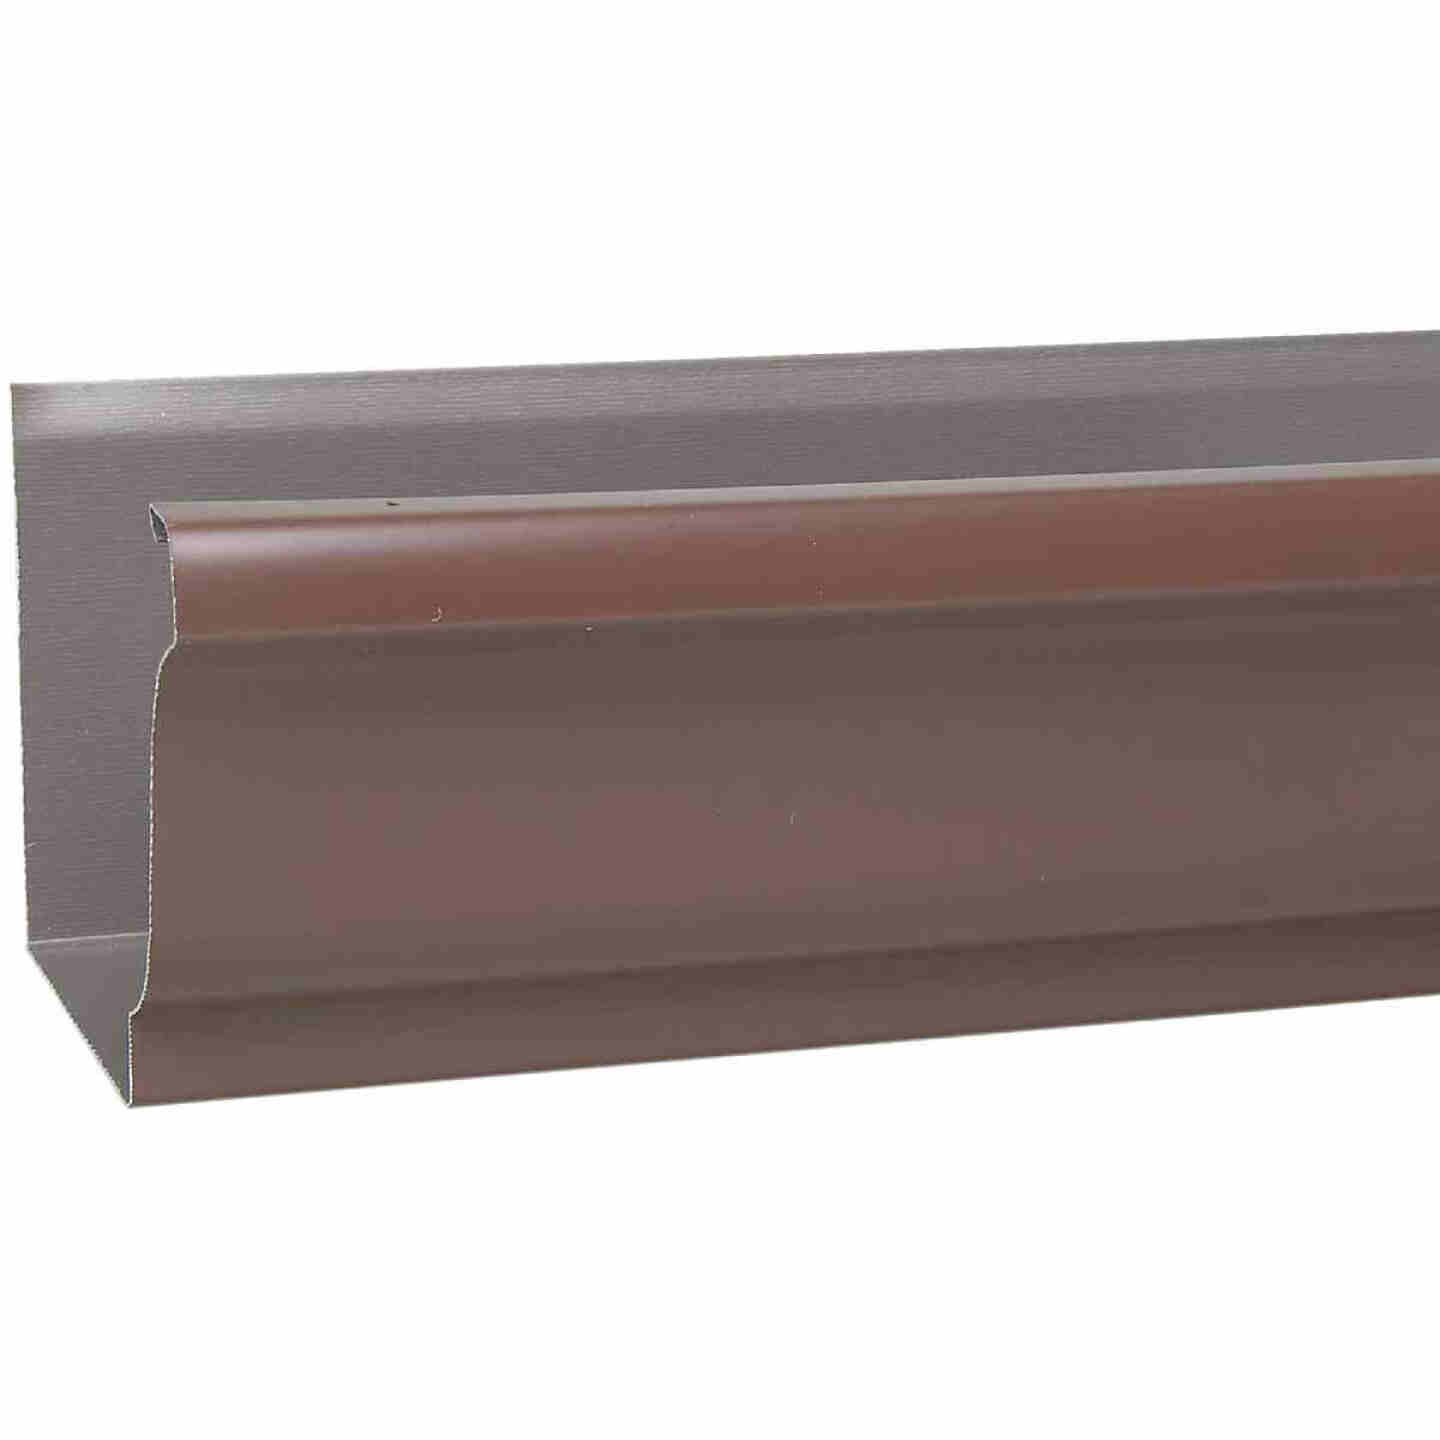 Amerimax 5 In. x 10 Ft. K-Style Brown Galvanized Gutter Image 1